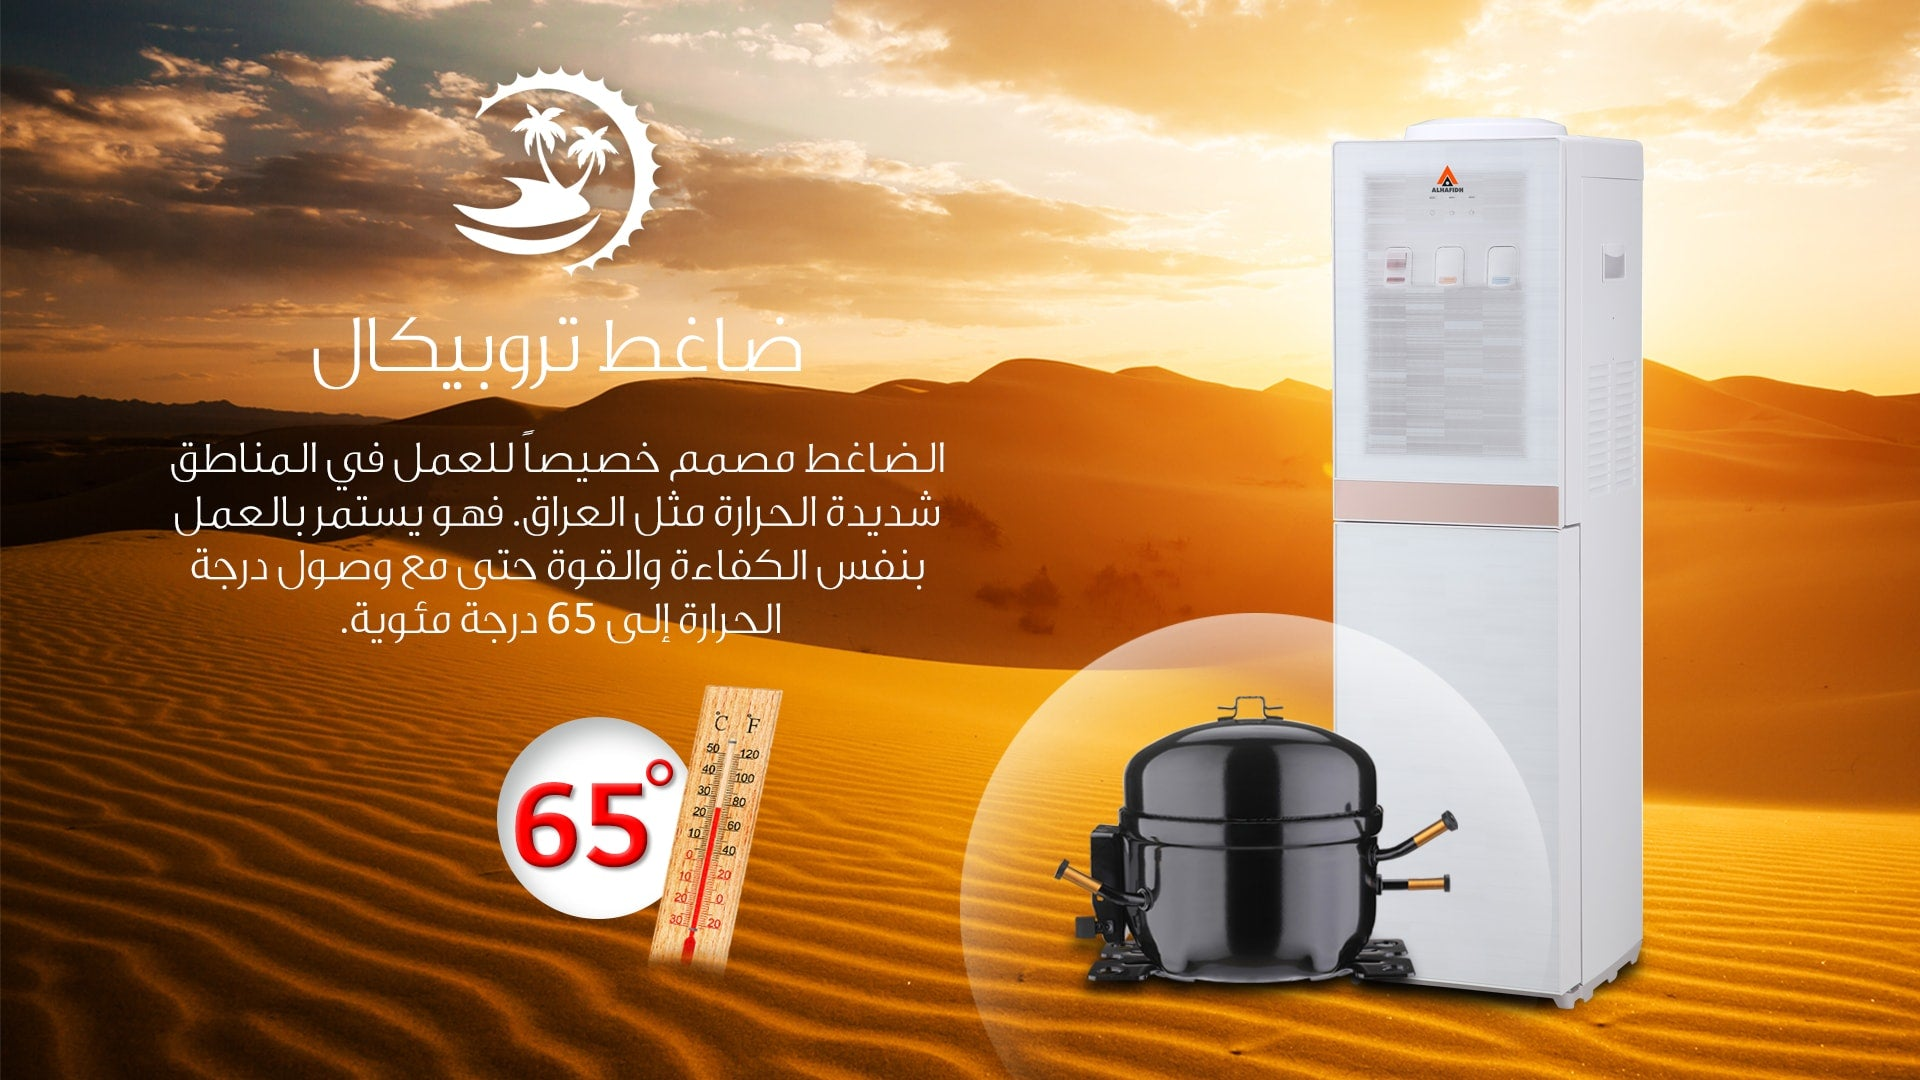 feature Tropical Compressor ALHAFIDH DHA-78DSW Tap Free Standing Water Dispenser